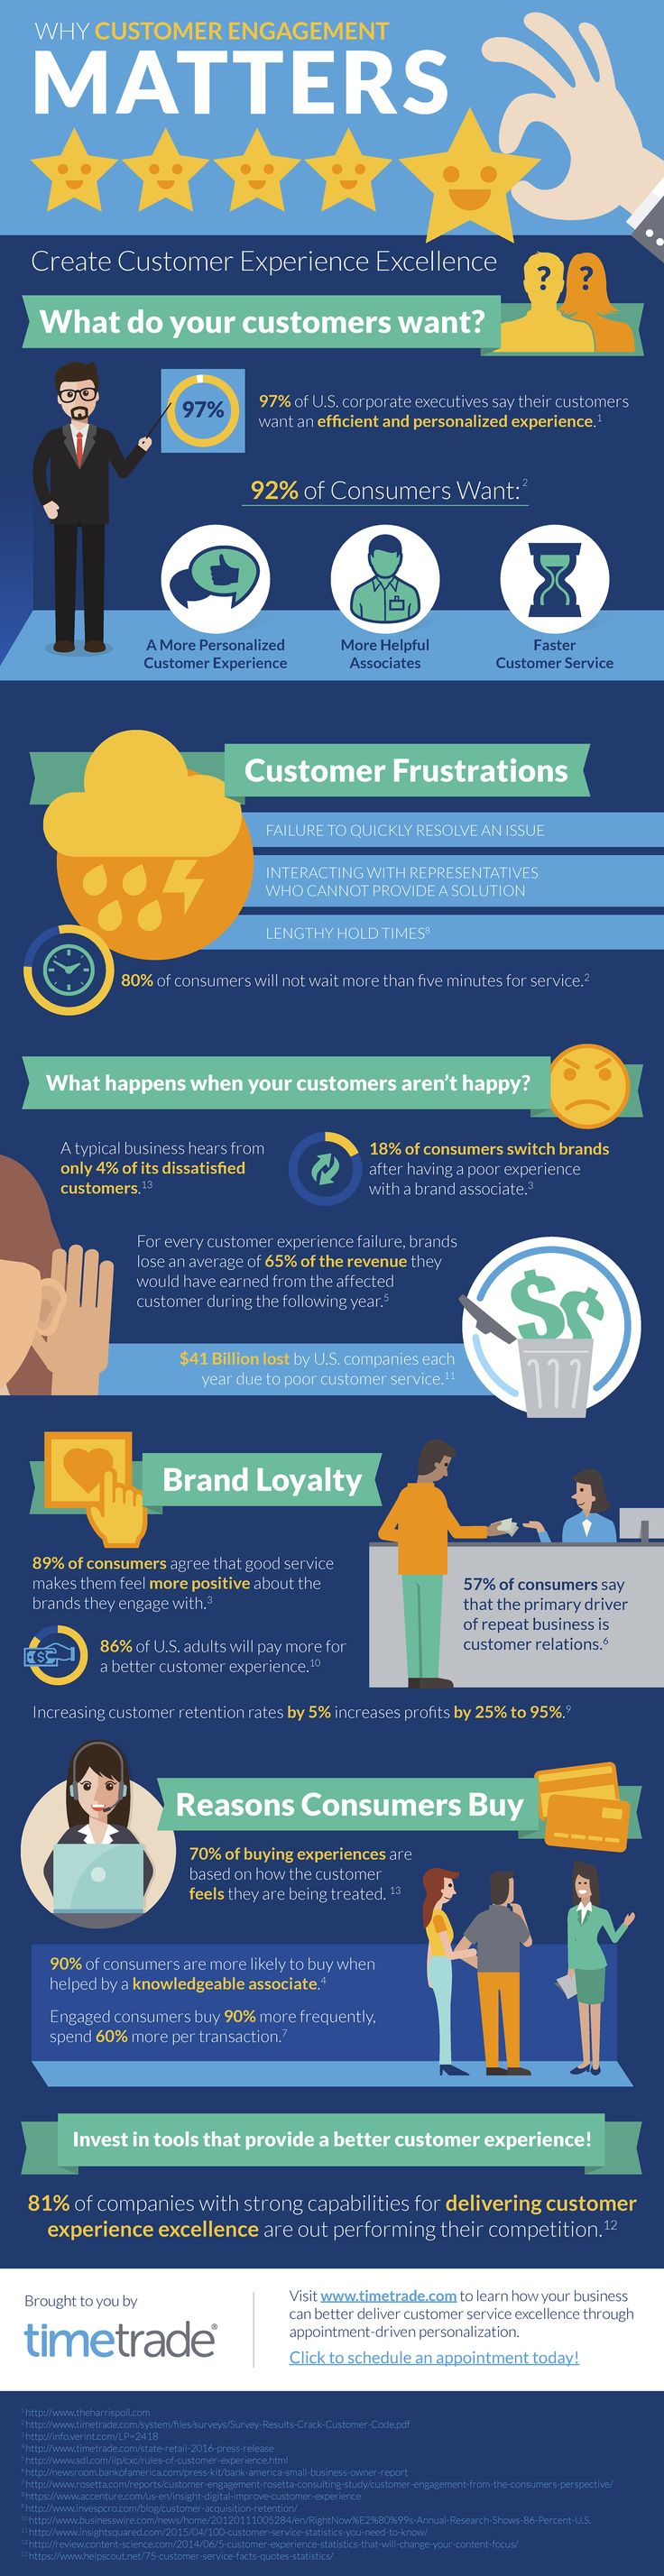 Why Customer Engagement Matters [Infographic]